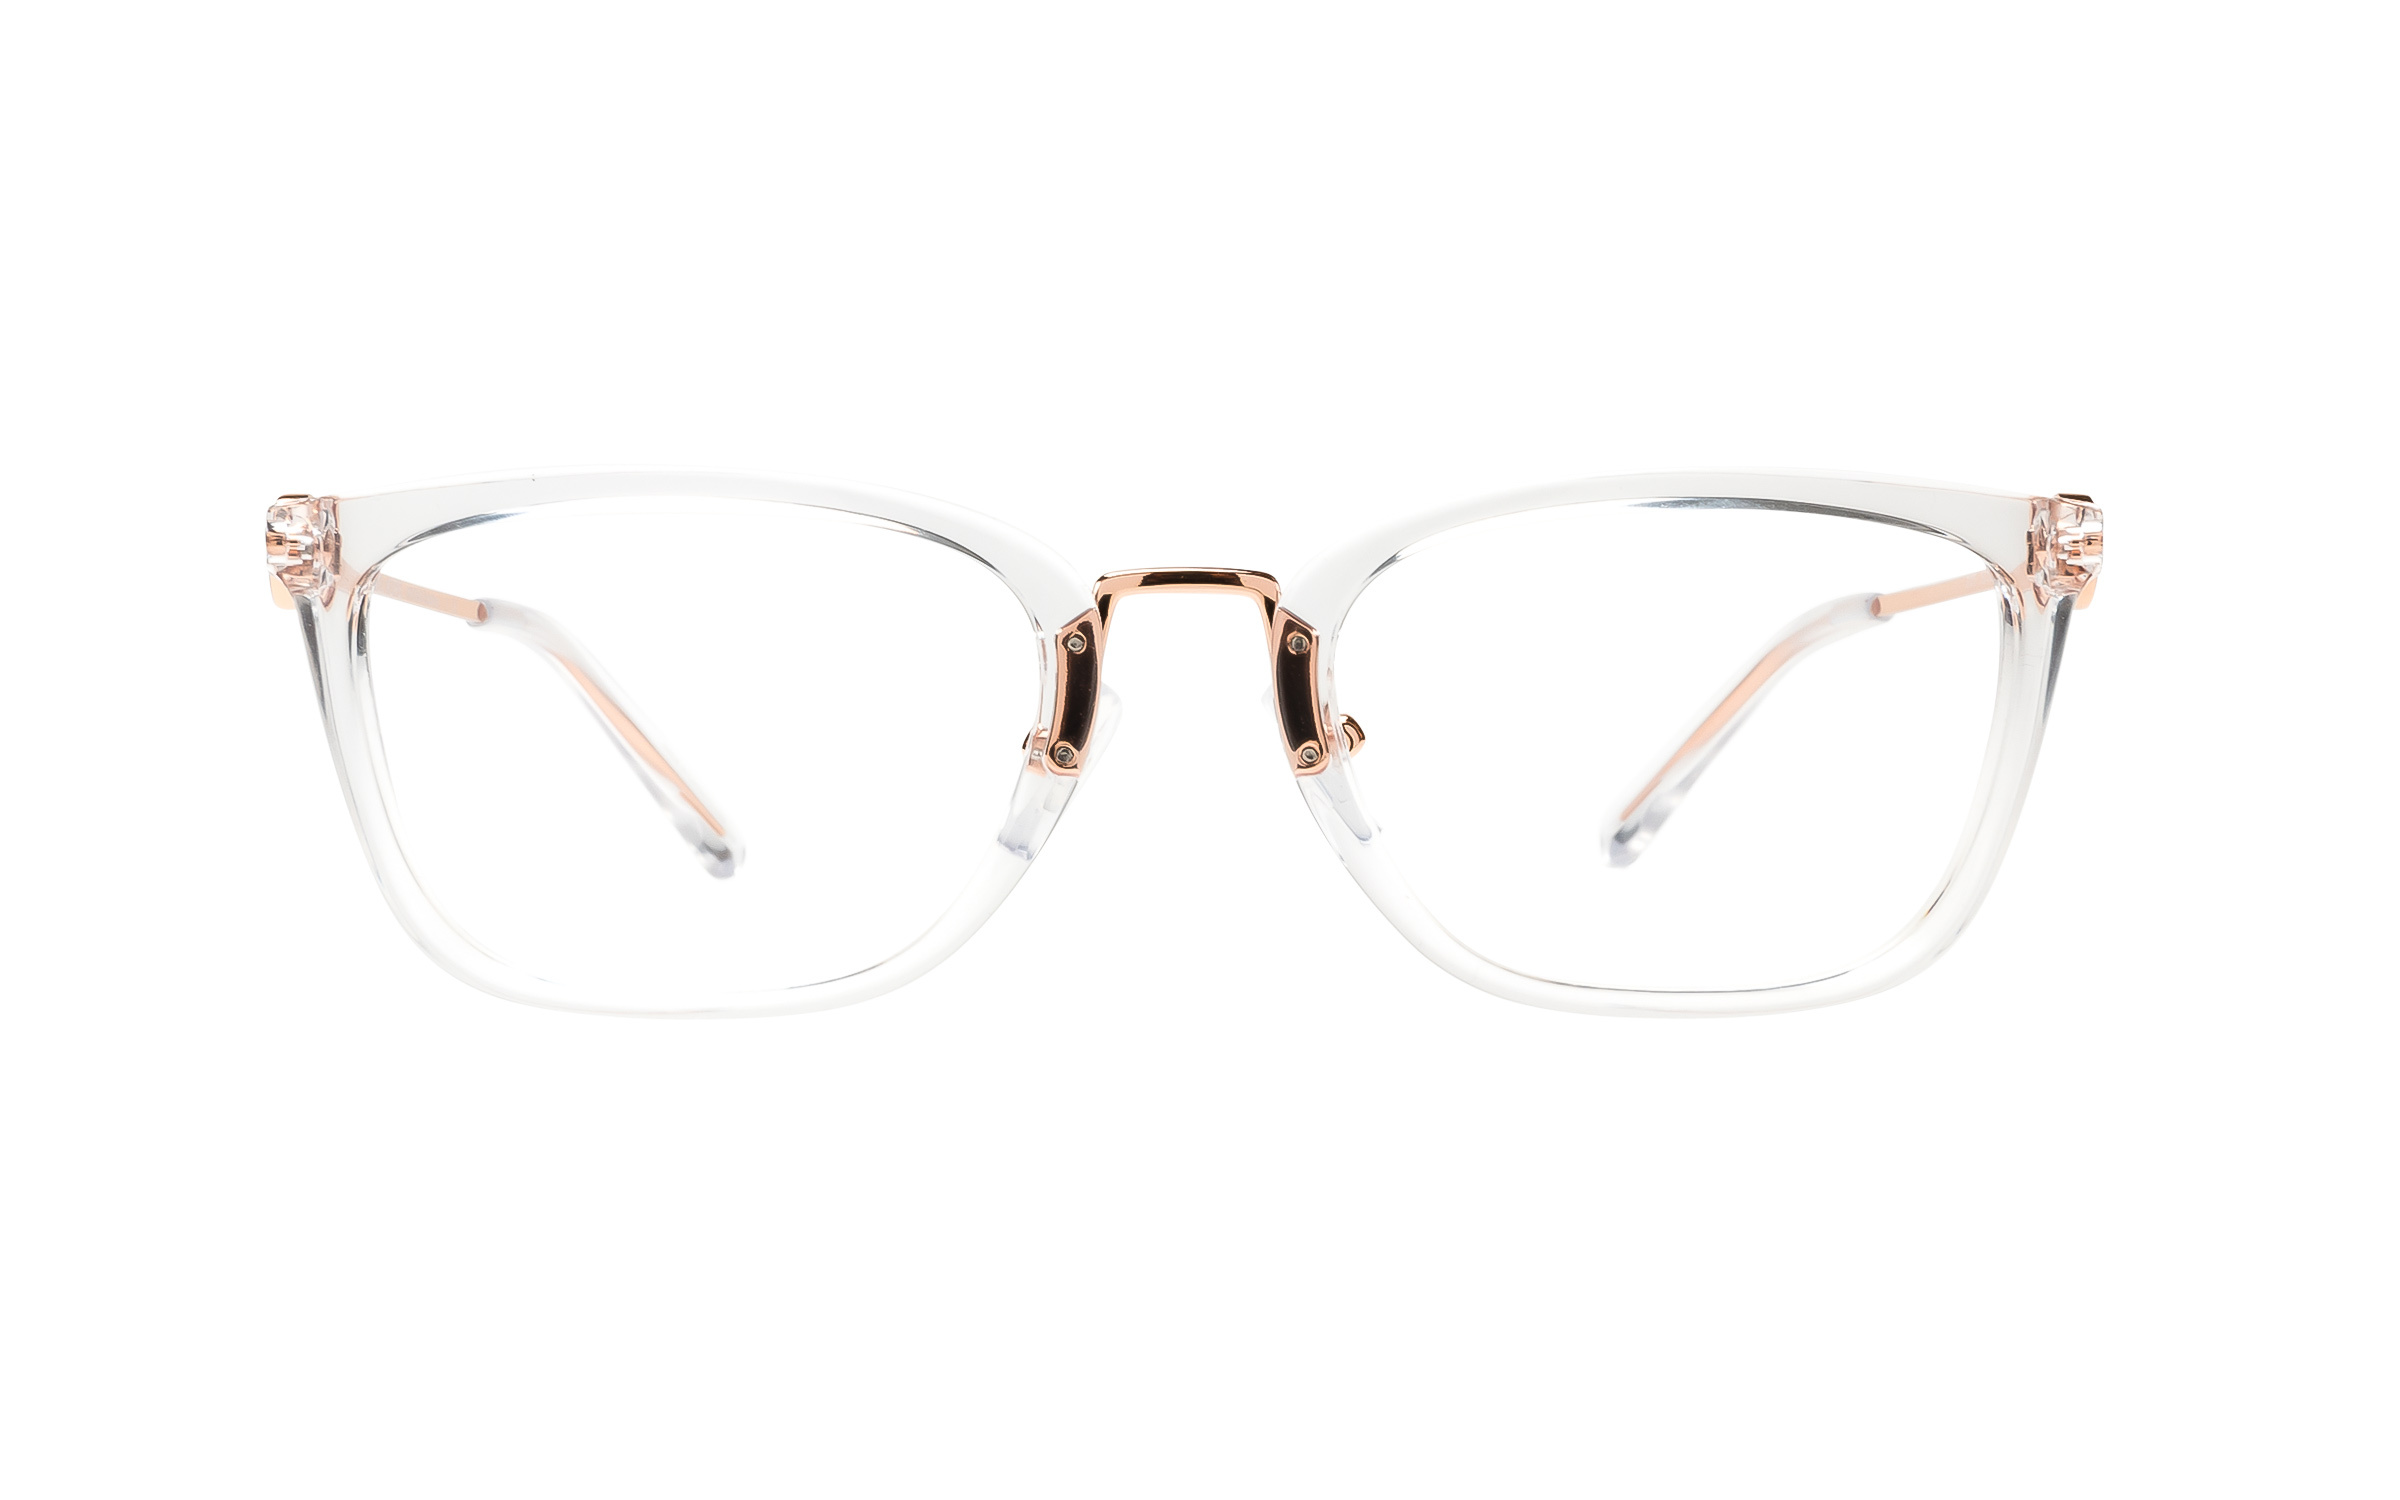 Luxottica Michael Kors MK4054 3105 (52) Eyeglasses and Frame in Crystal Clear Clear/Gold | Acetate/Plastic/Metal - Online